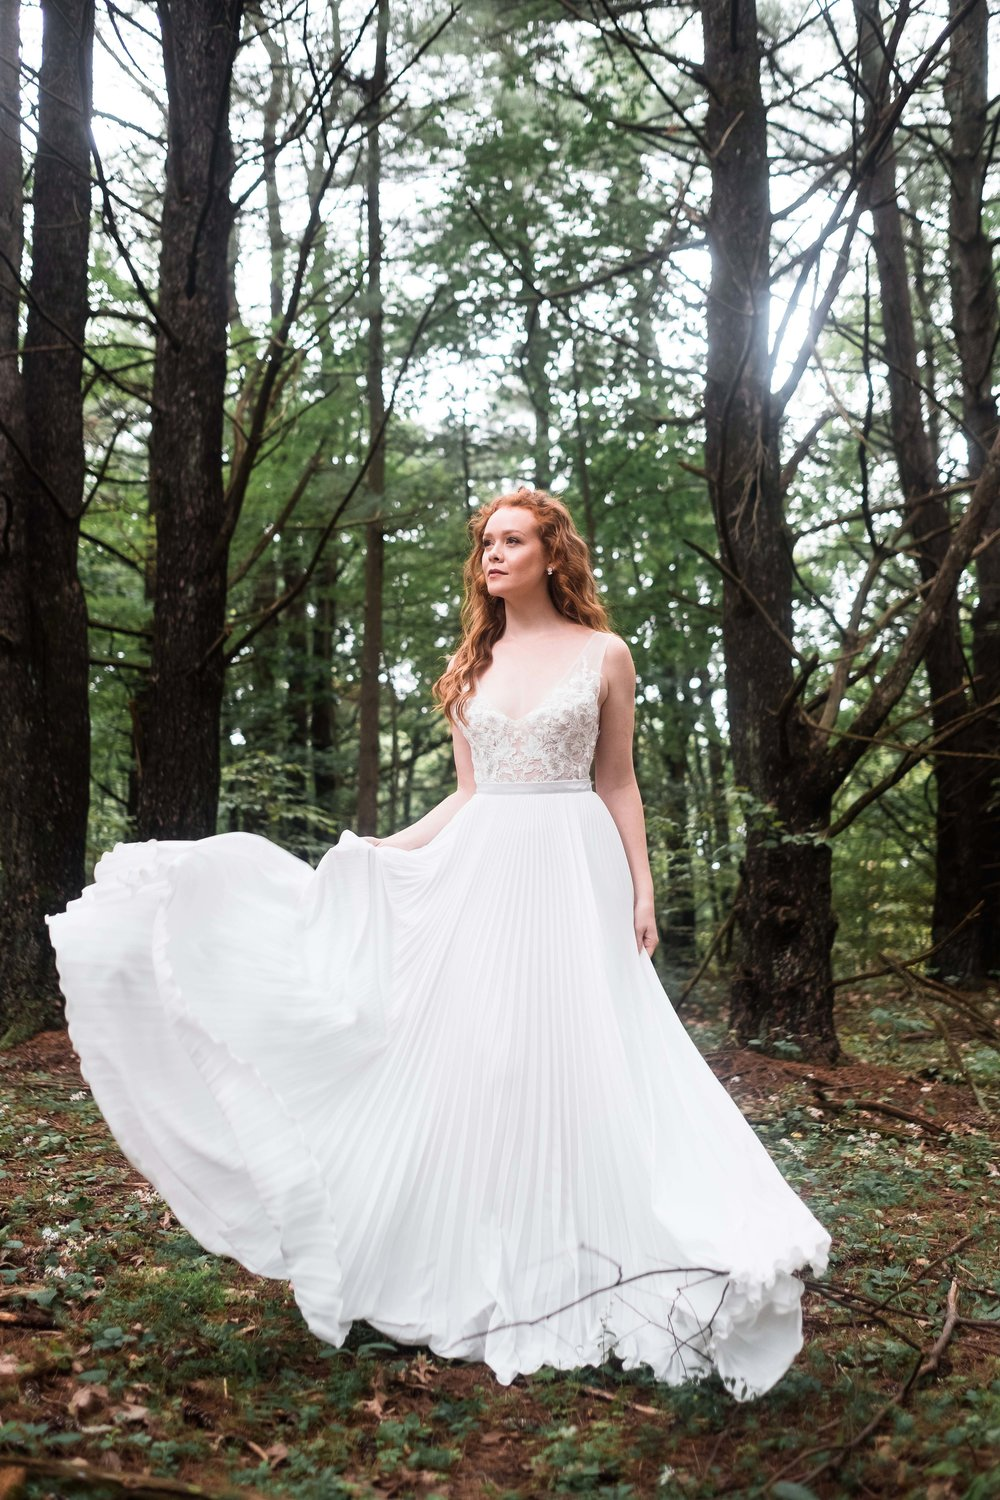 WSPCo-Gather-Greene-Rebecca-Schoneveld-Bridal-367 copy.jpg